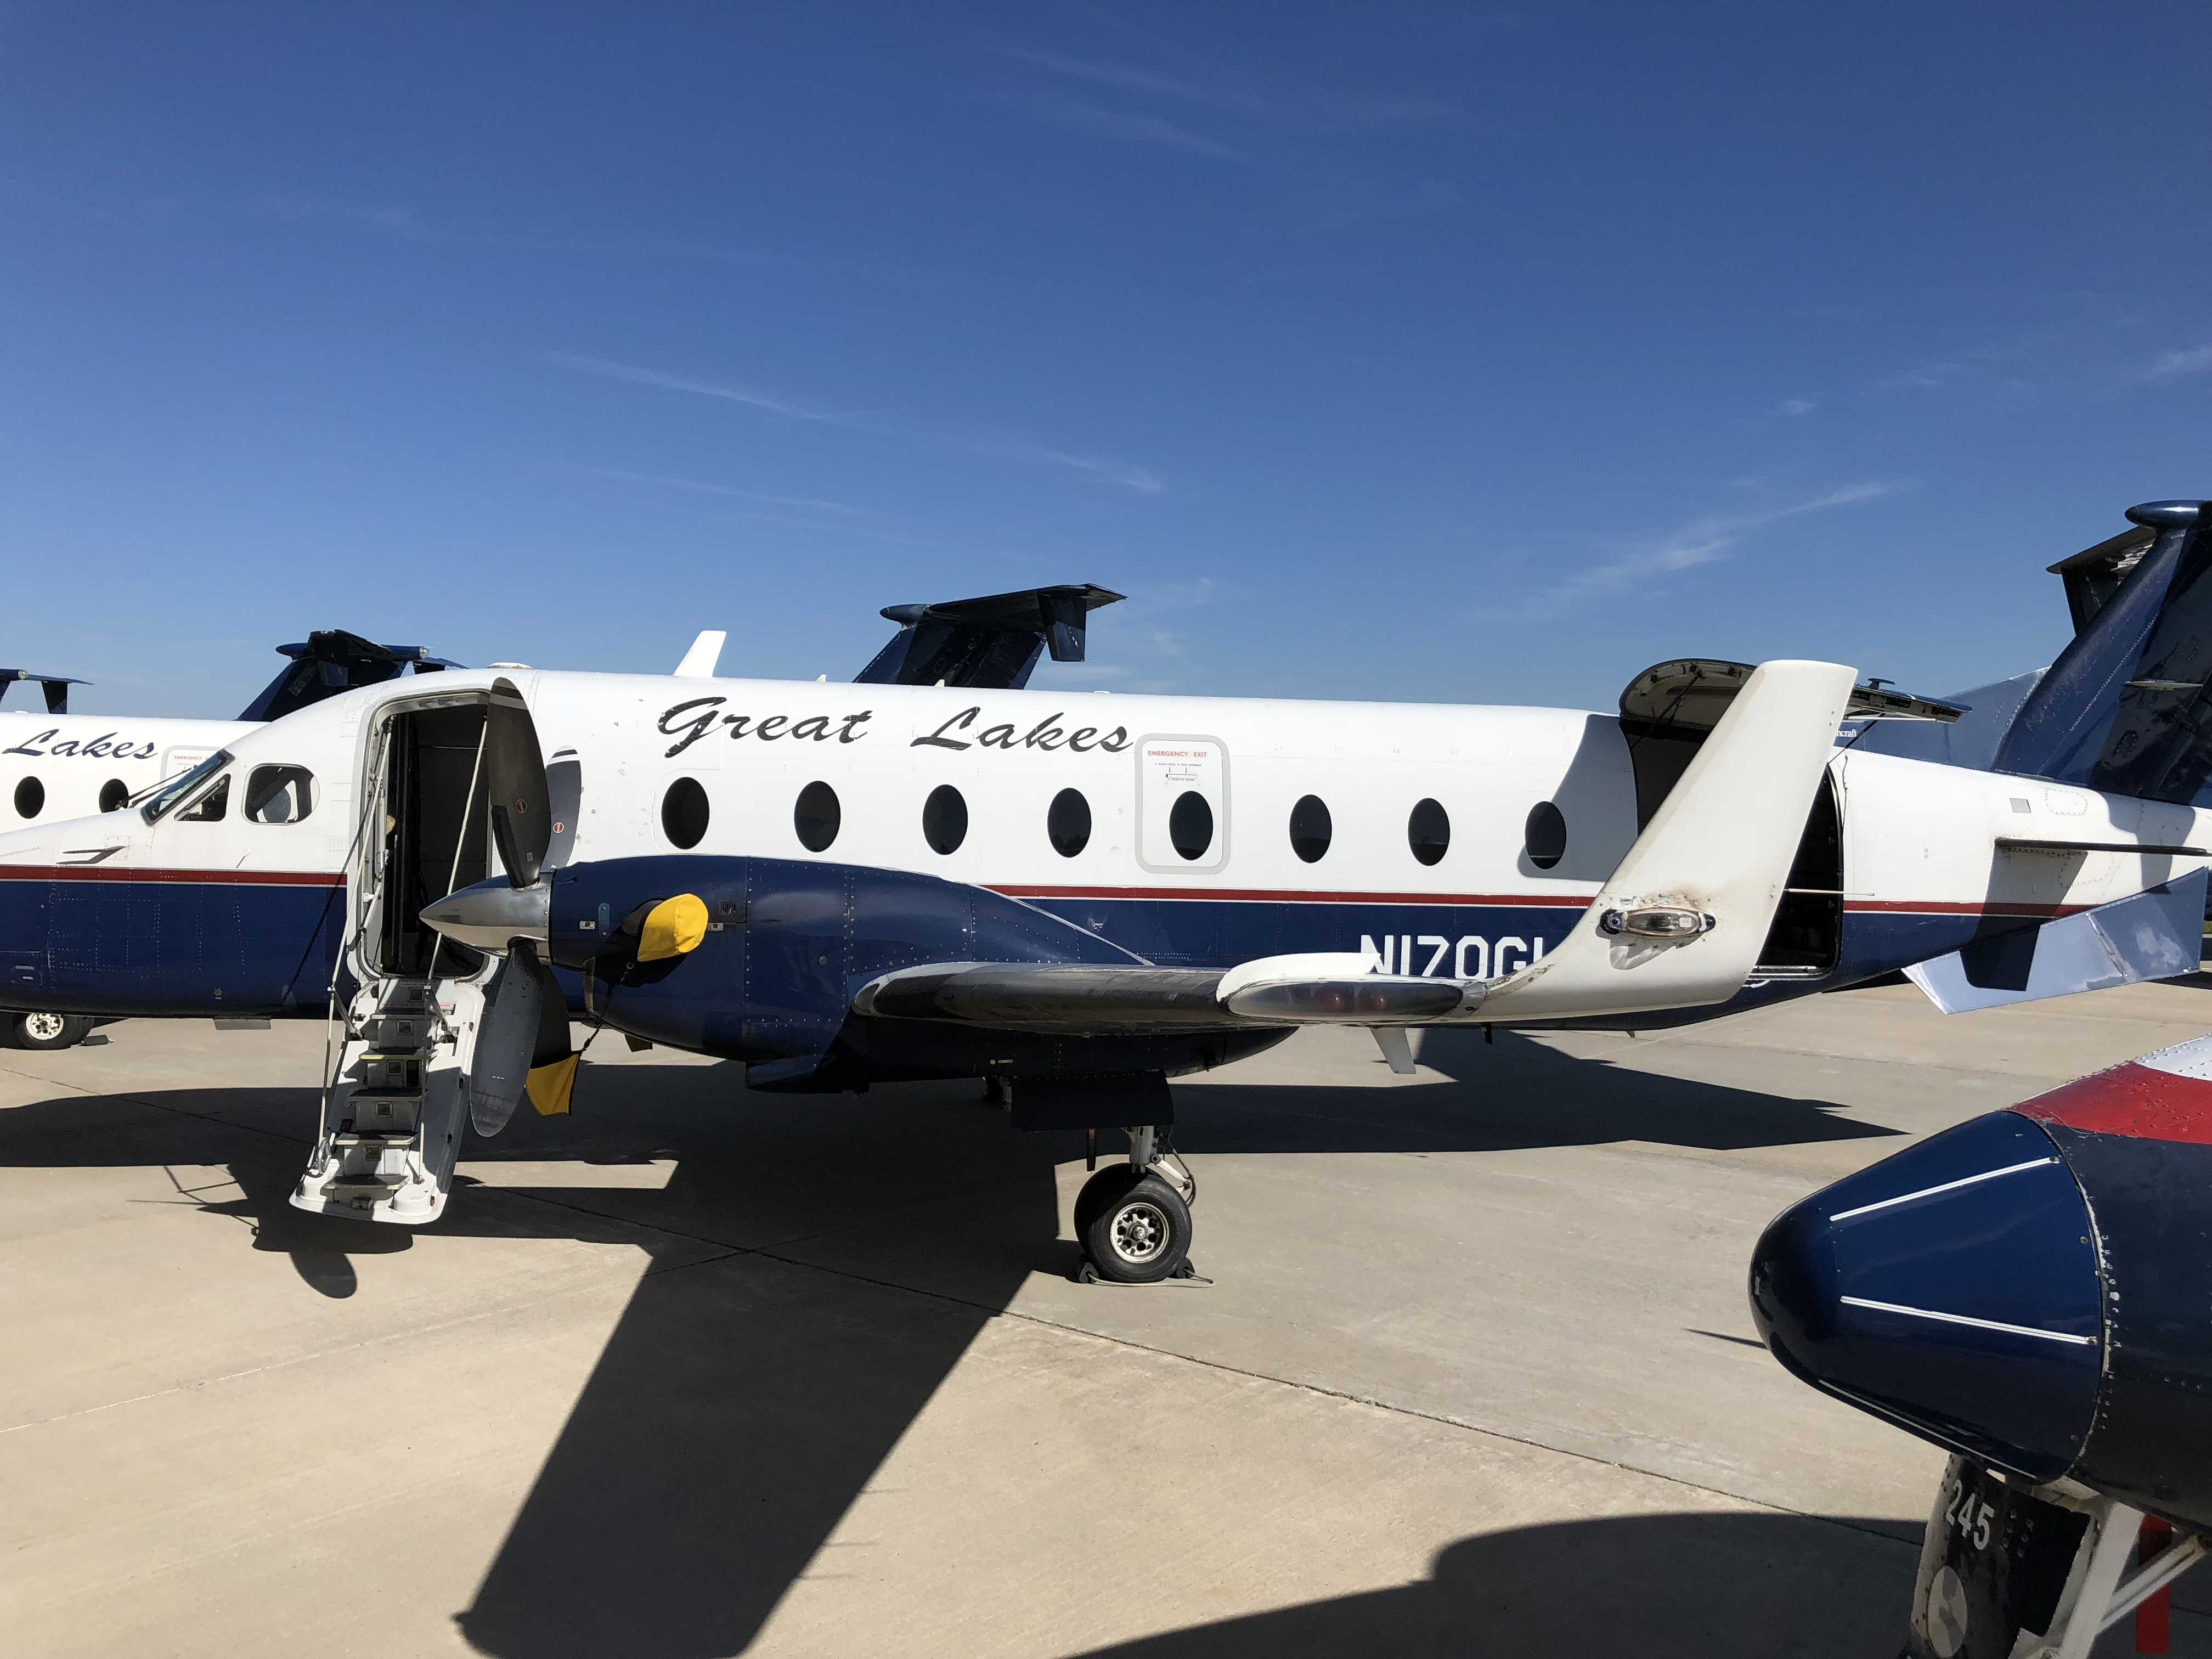 Airplanes for sale, Buy-Sell-Trade New and Used Aircraft | Globalair com